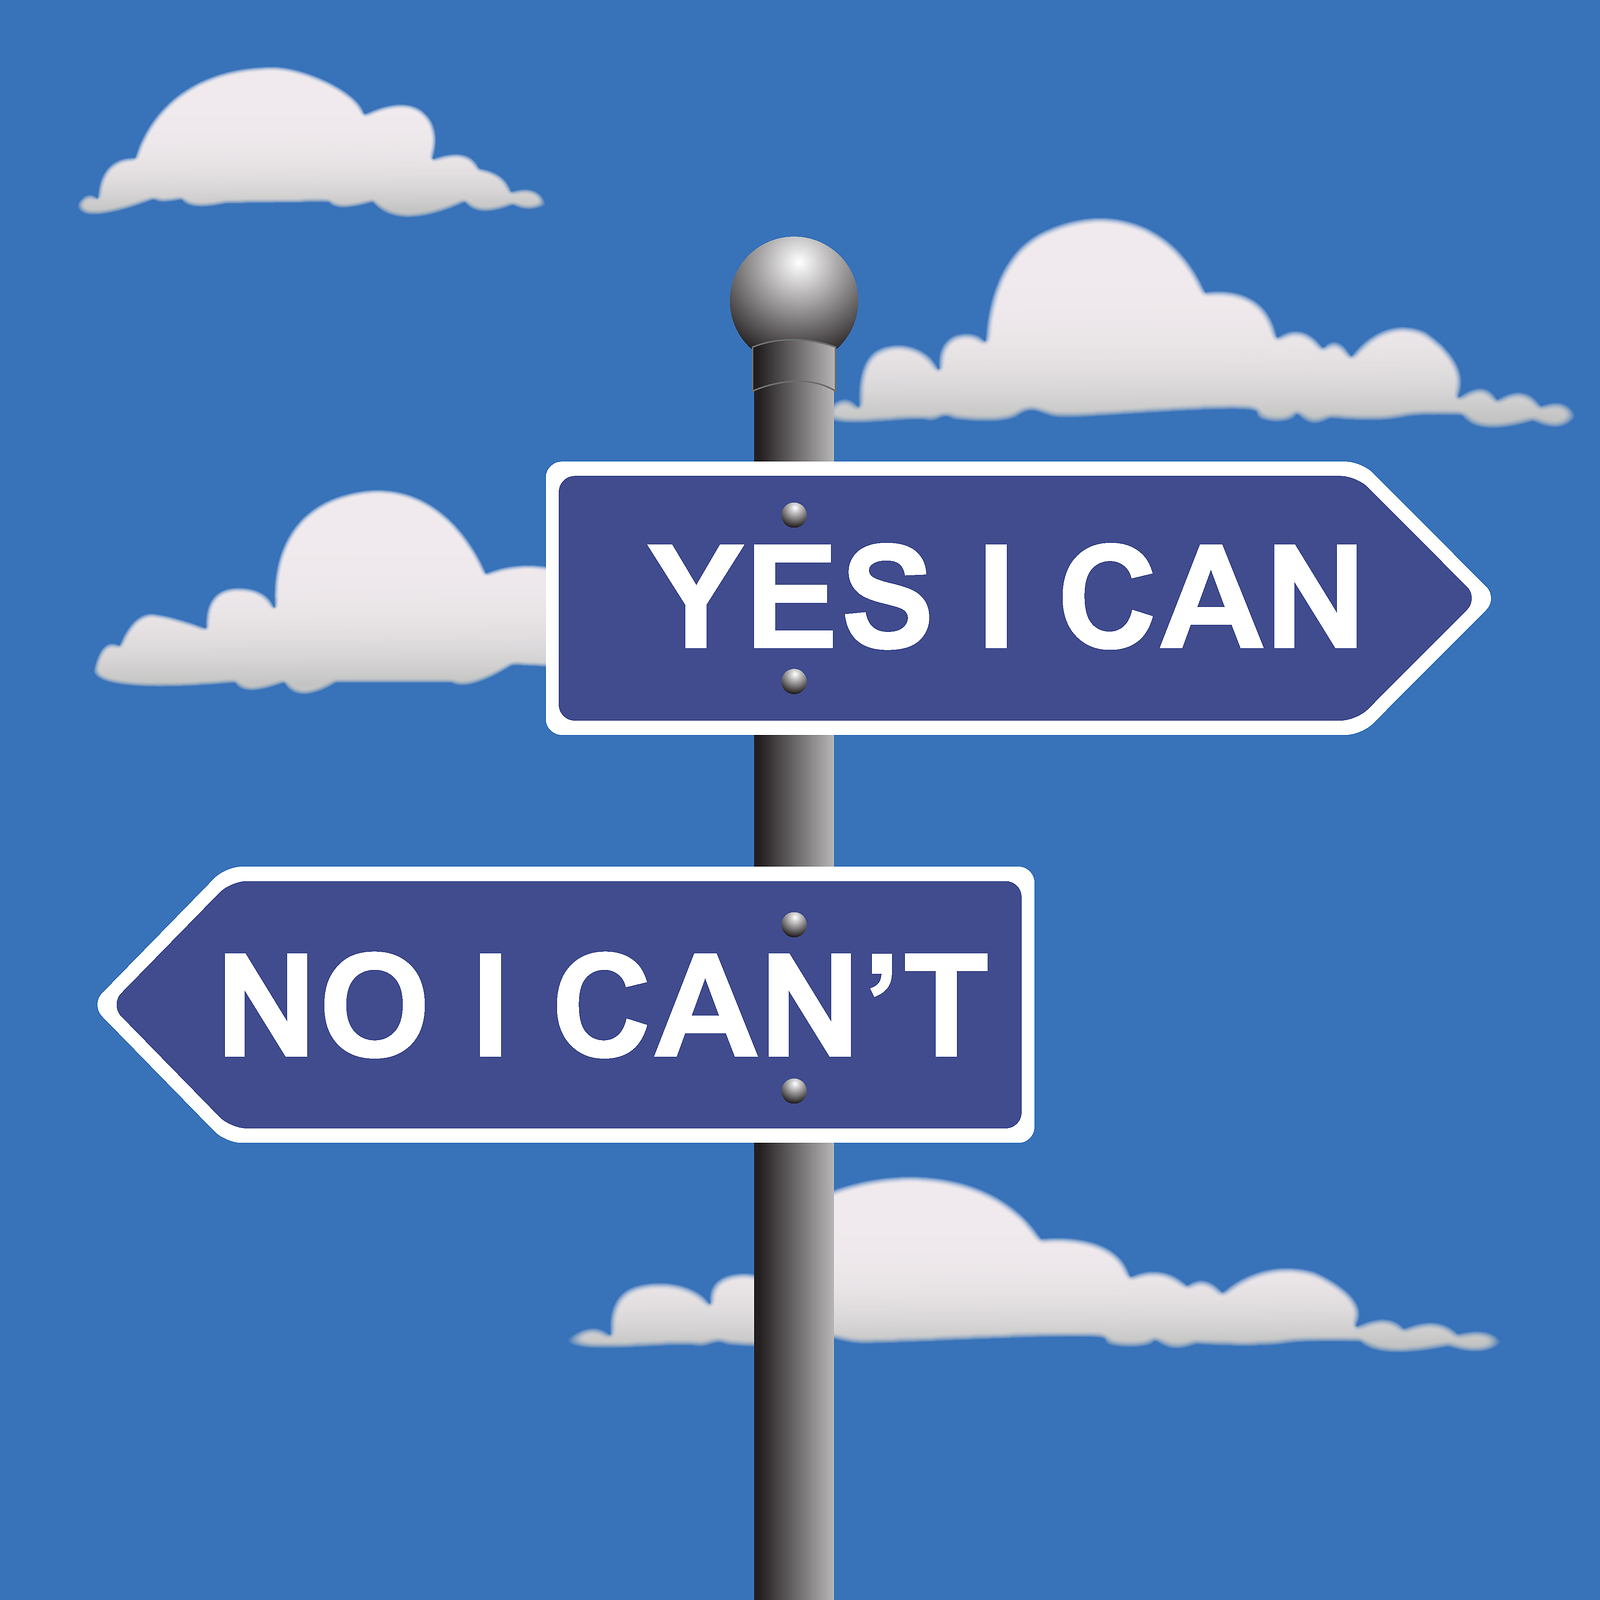 Don't Think About What You CAN'T Do. Think About What You CAN Do.